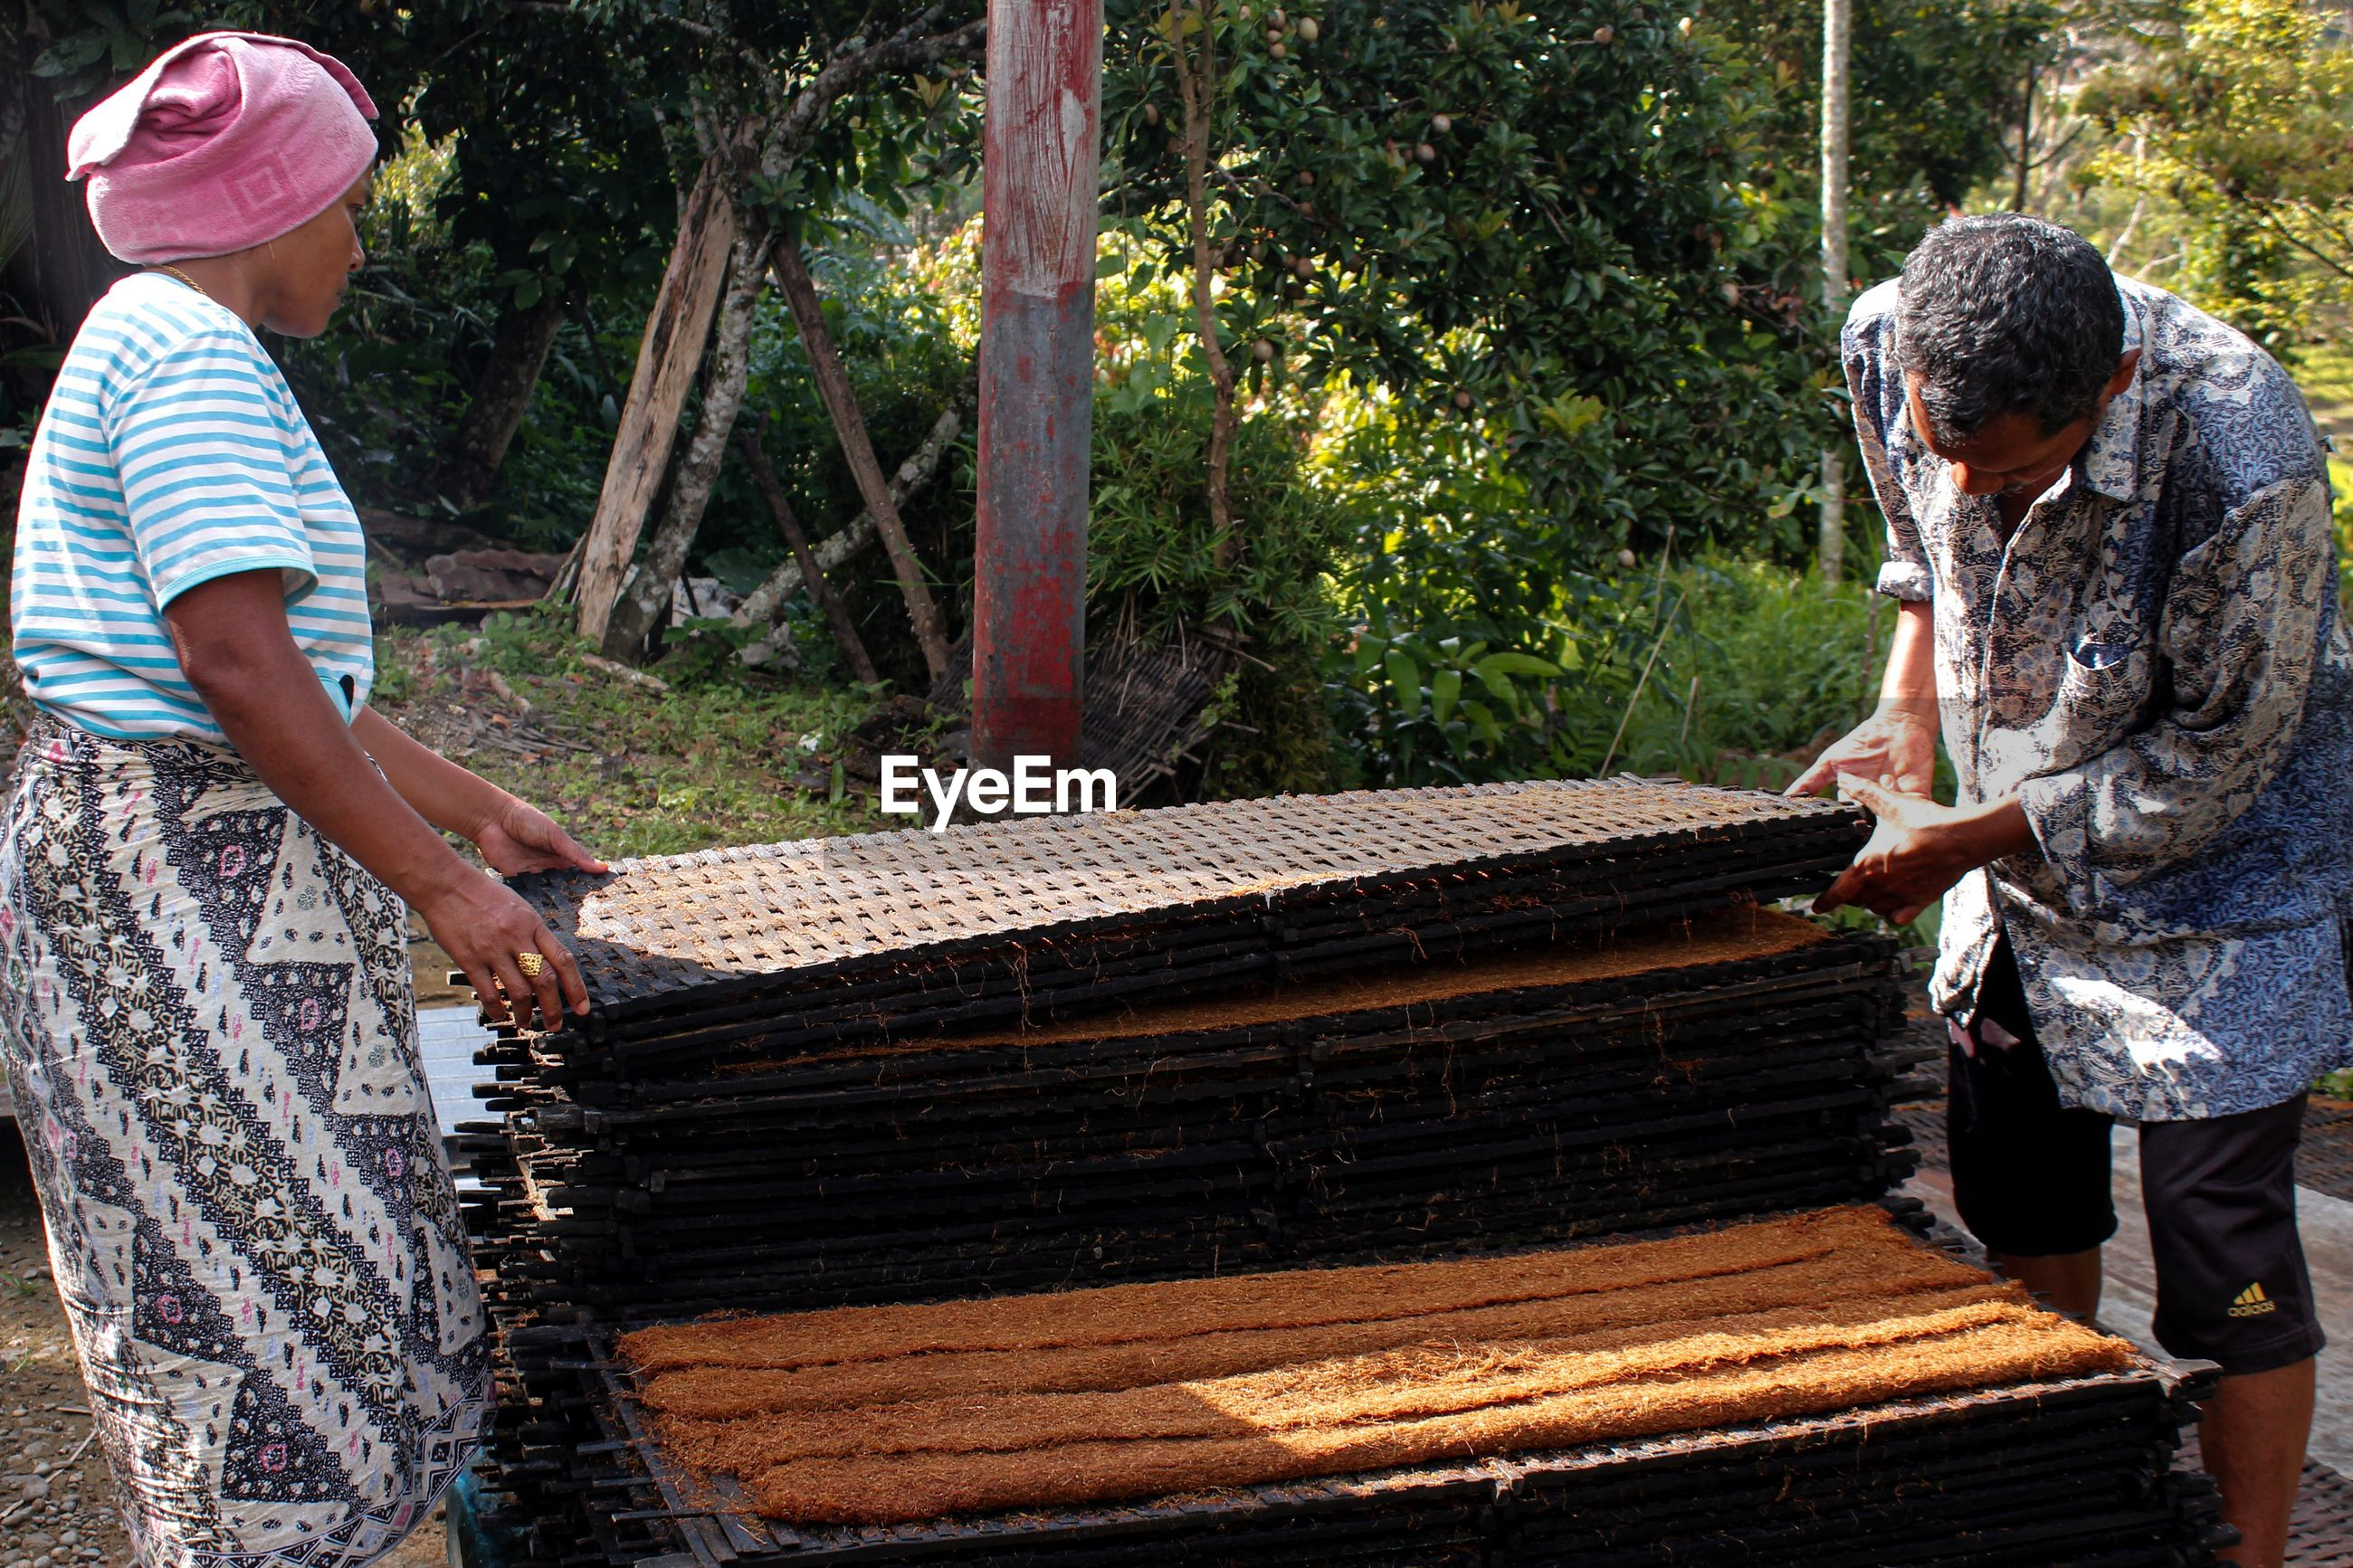 The process of making tobacco manually